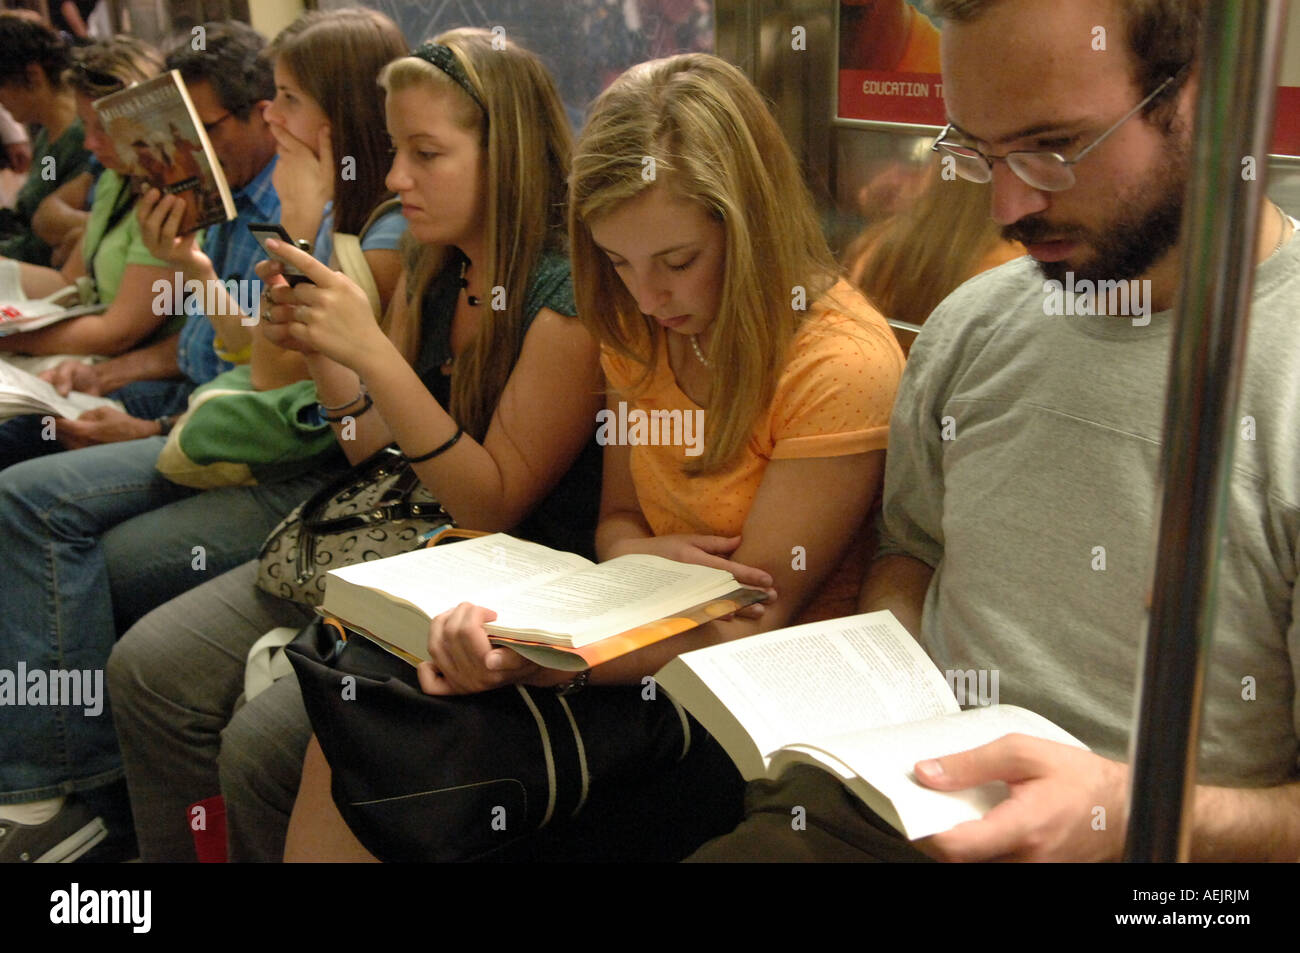 People reading on the subway in NYC - Stock Image